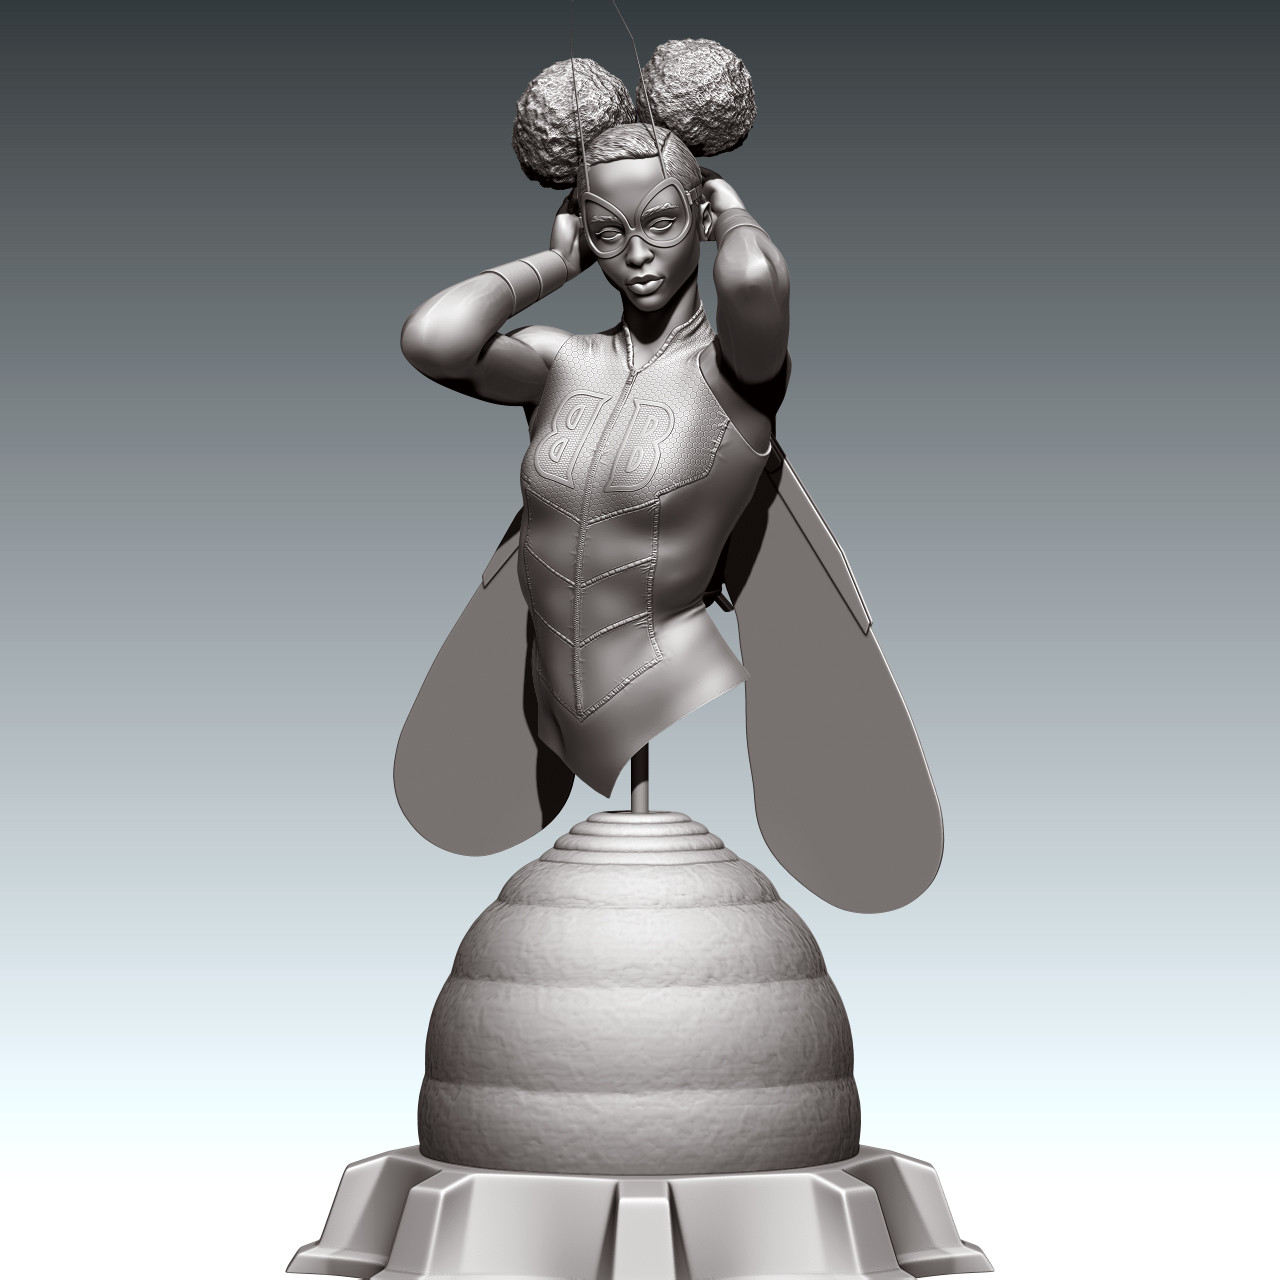 Ejay russell zbrush document2